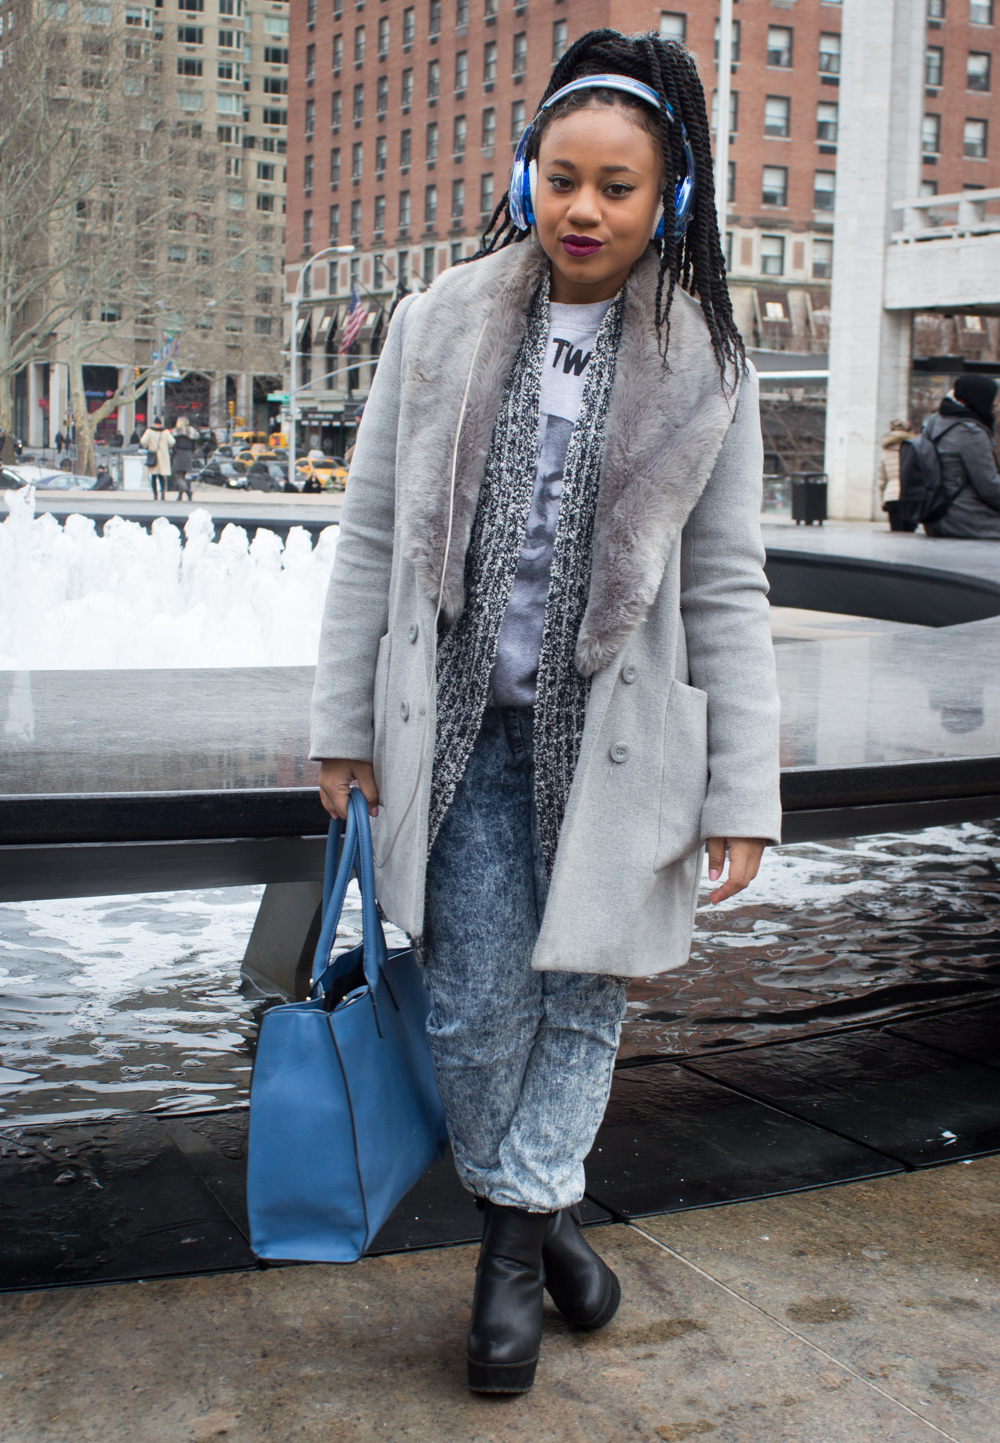 Winter-friendly street style // www.brokeandchic.com